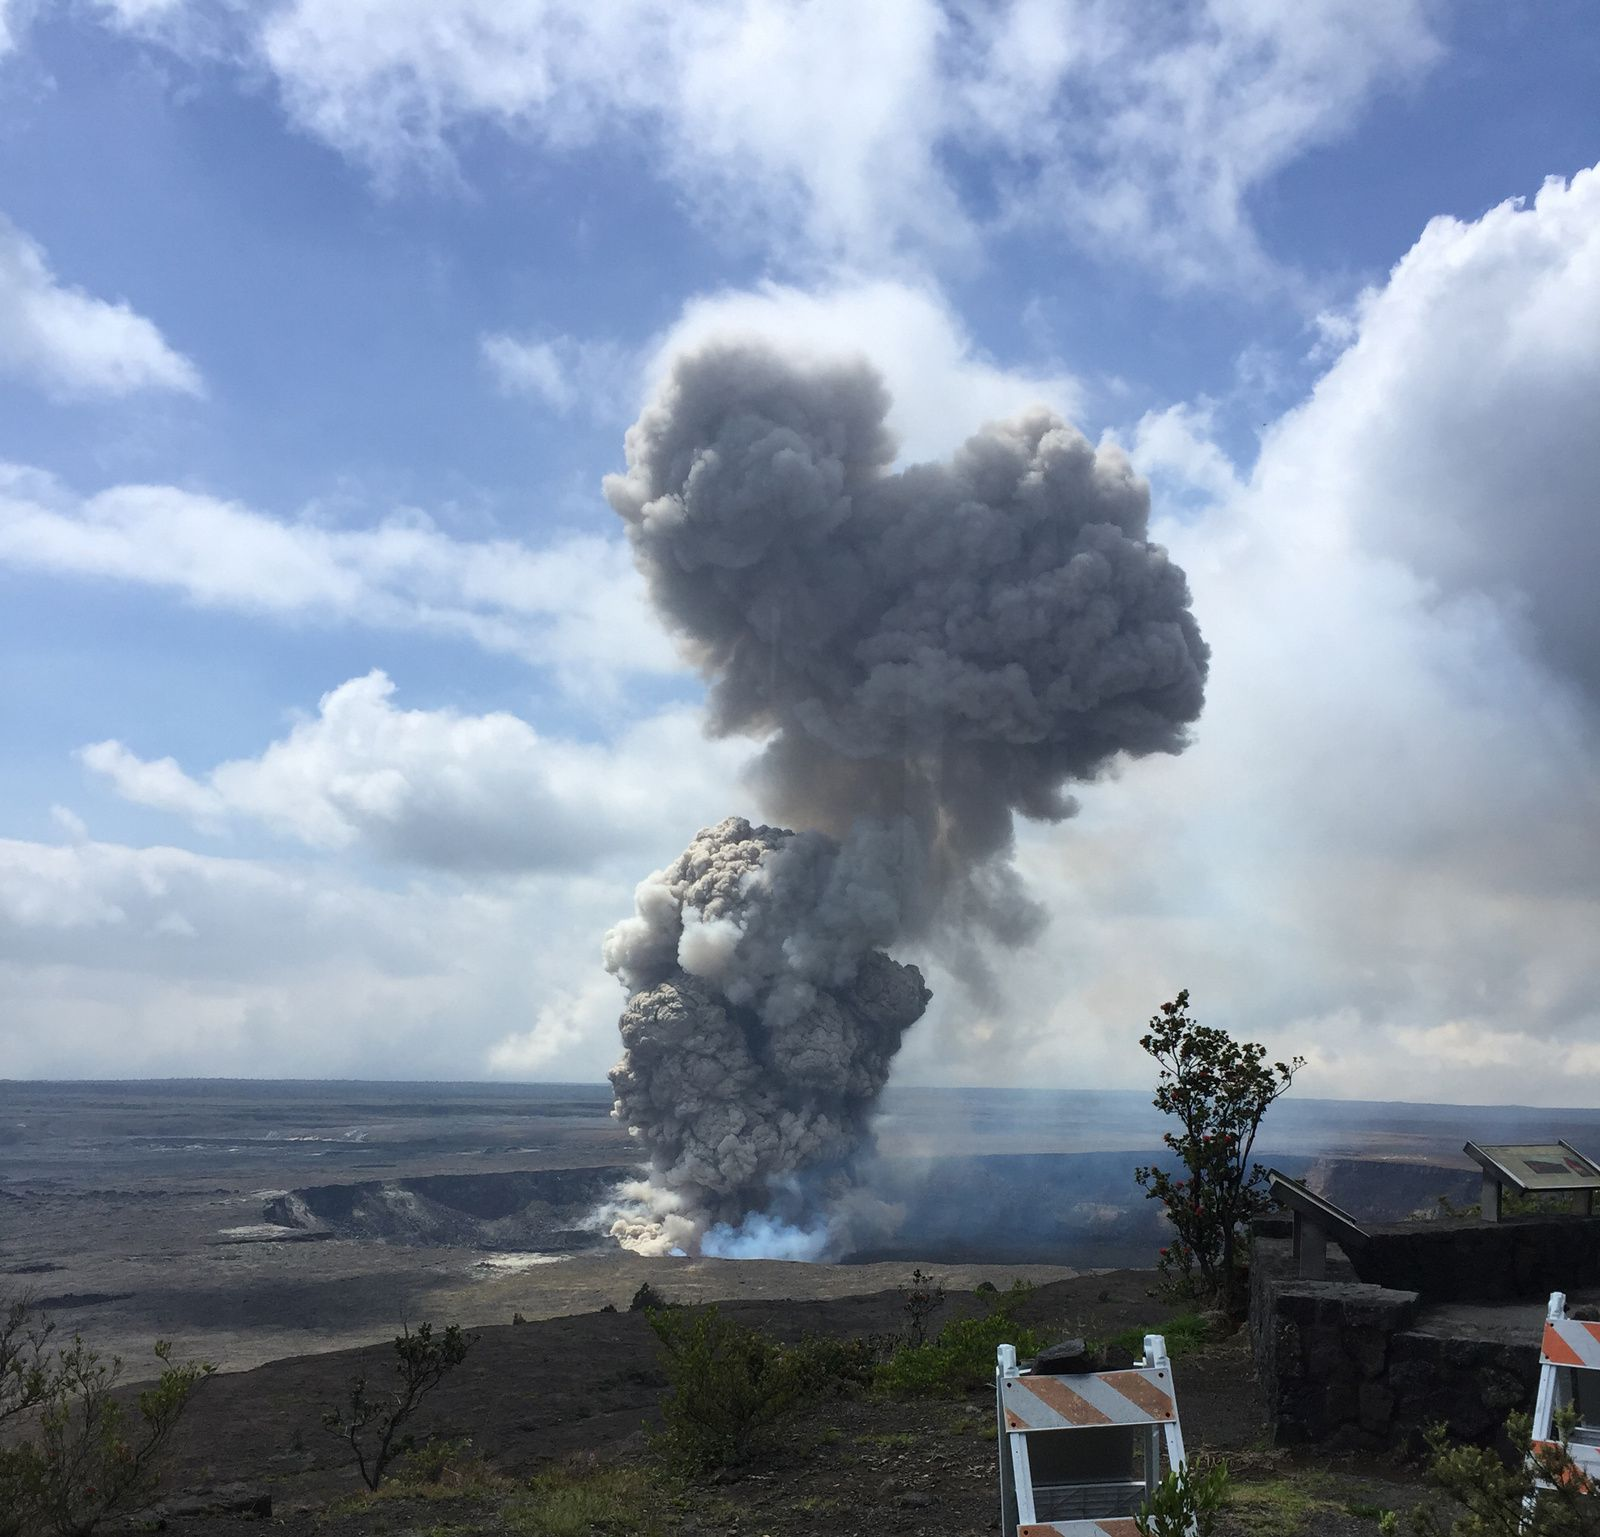 Kilauea / Halema'uma'u: explosion due to the partial collapse of the crater wall 06.04.2018 / 10:48 HST - photo HVO / USGS